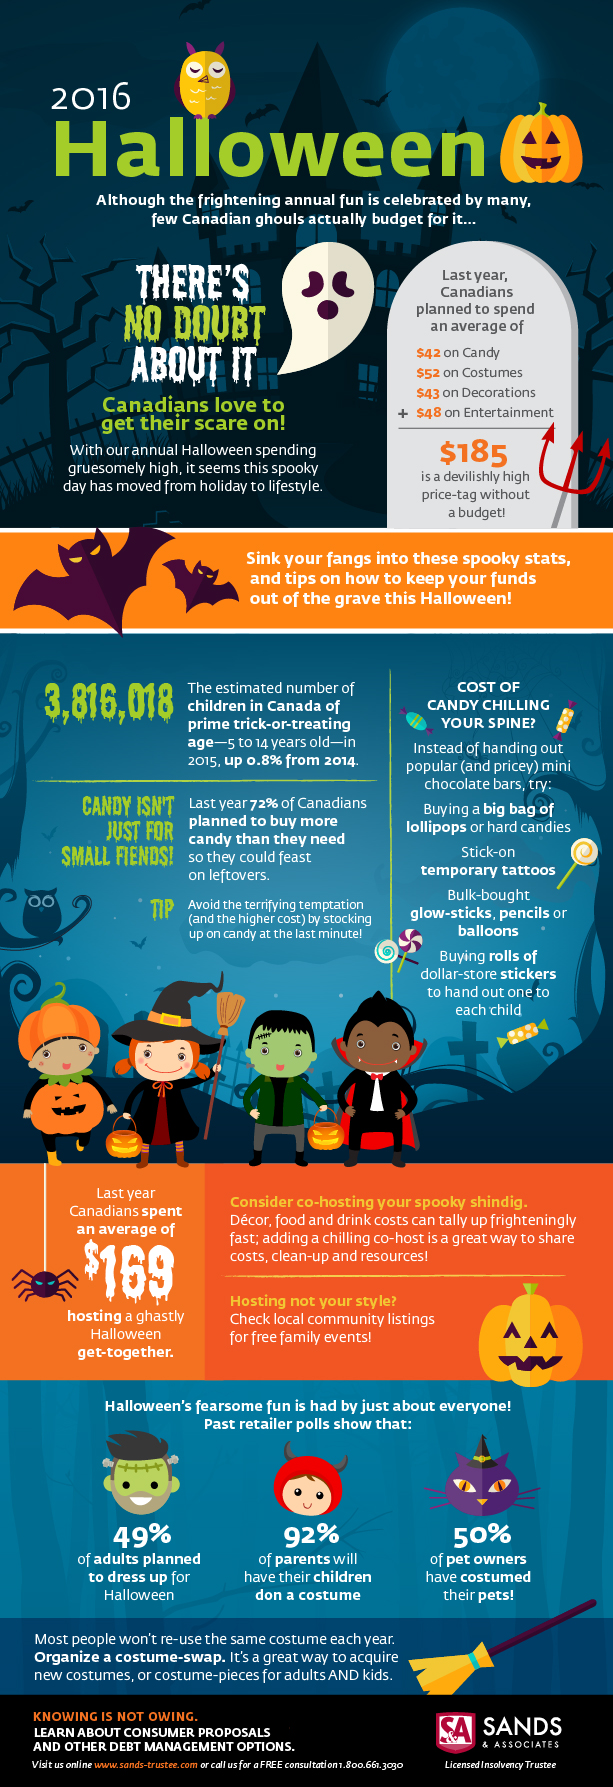 Sands & Associates 2016 Halloween spending infographic